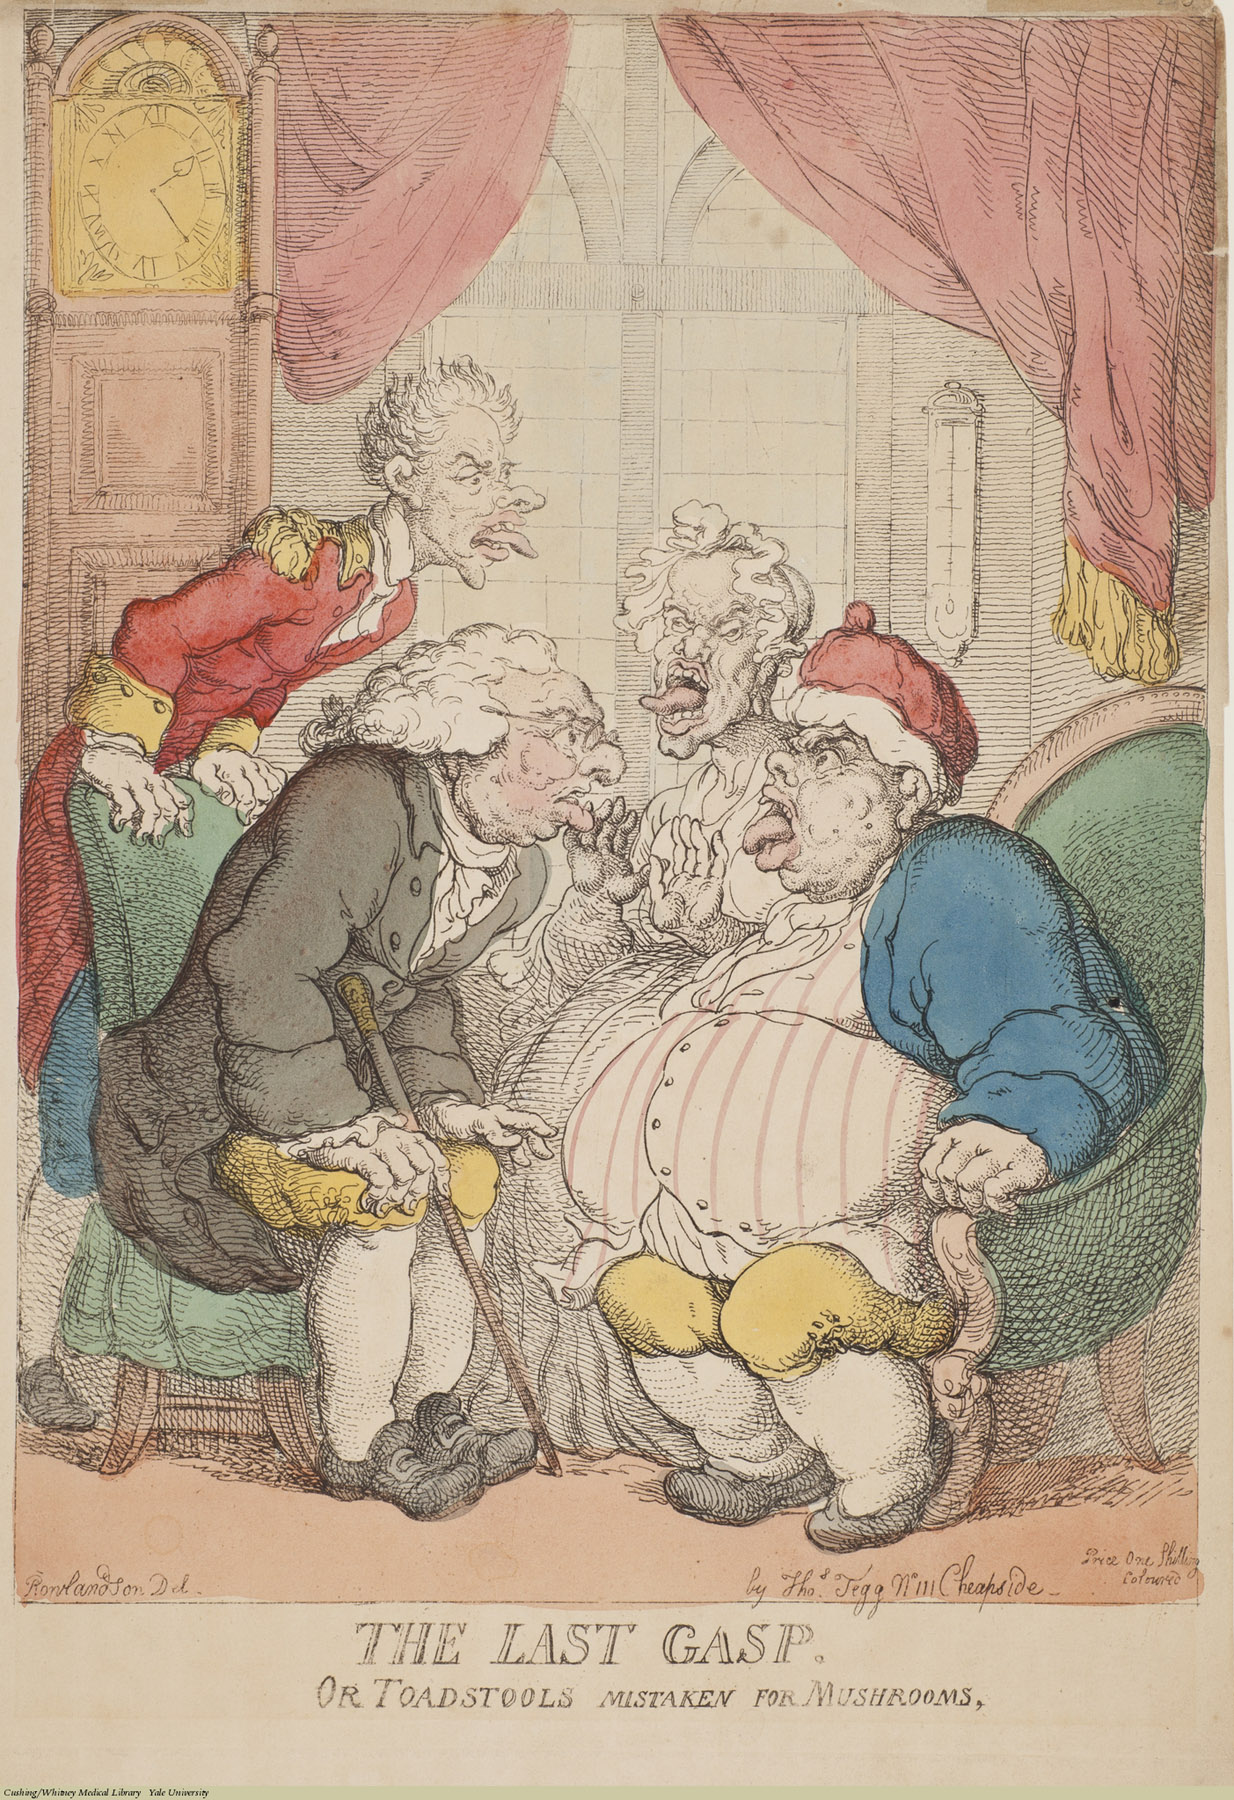 The Last Gasp. Or Toadstools Mistaken for Mushrooms. Thomas Rowlandson, Etching coloured. Subject: Mushrooms, Obesity, Gastronomy.